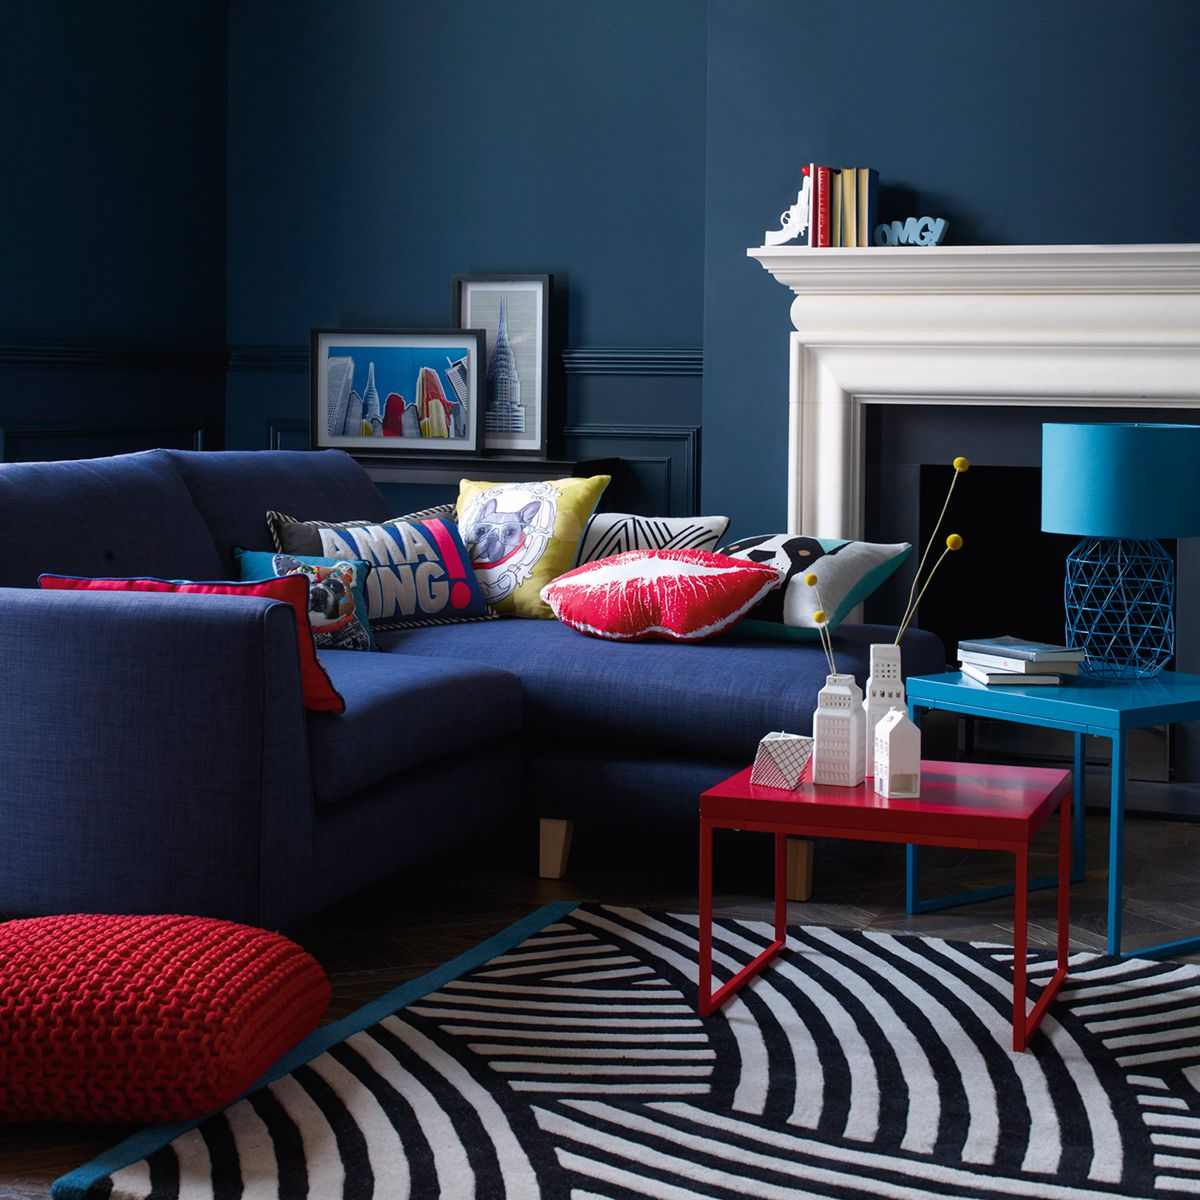 5 Decorating Ideas To Steal From Debenhams Home Decorating